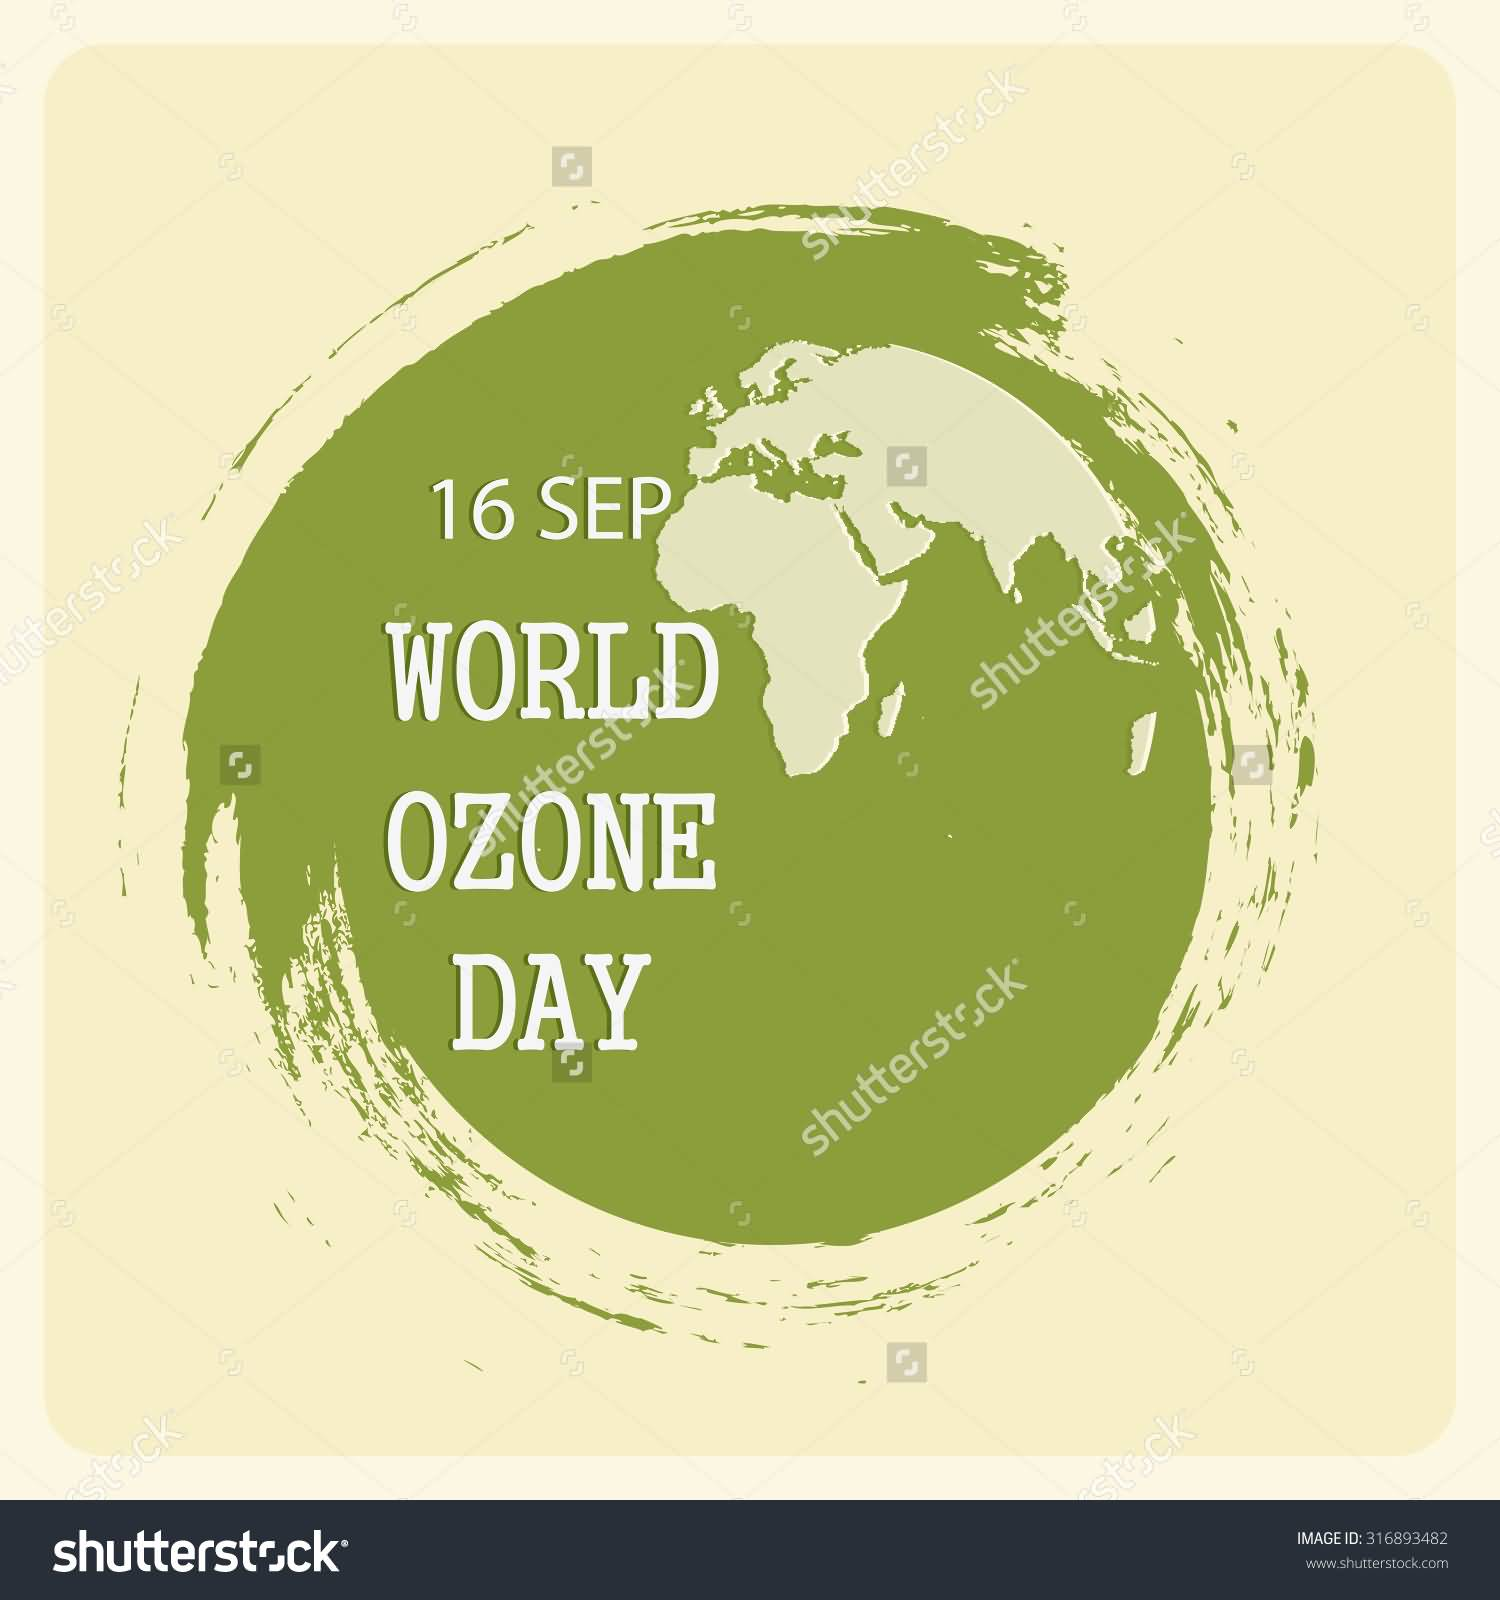 Marvelous 16 September World Ozone Day Earth Globe Vector Illustration 16 September Russ 16 September Personality dpreview 16 Sep